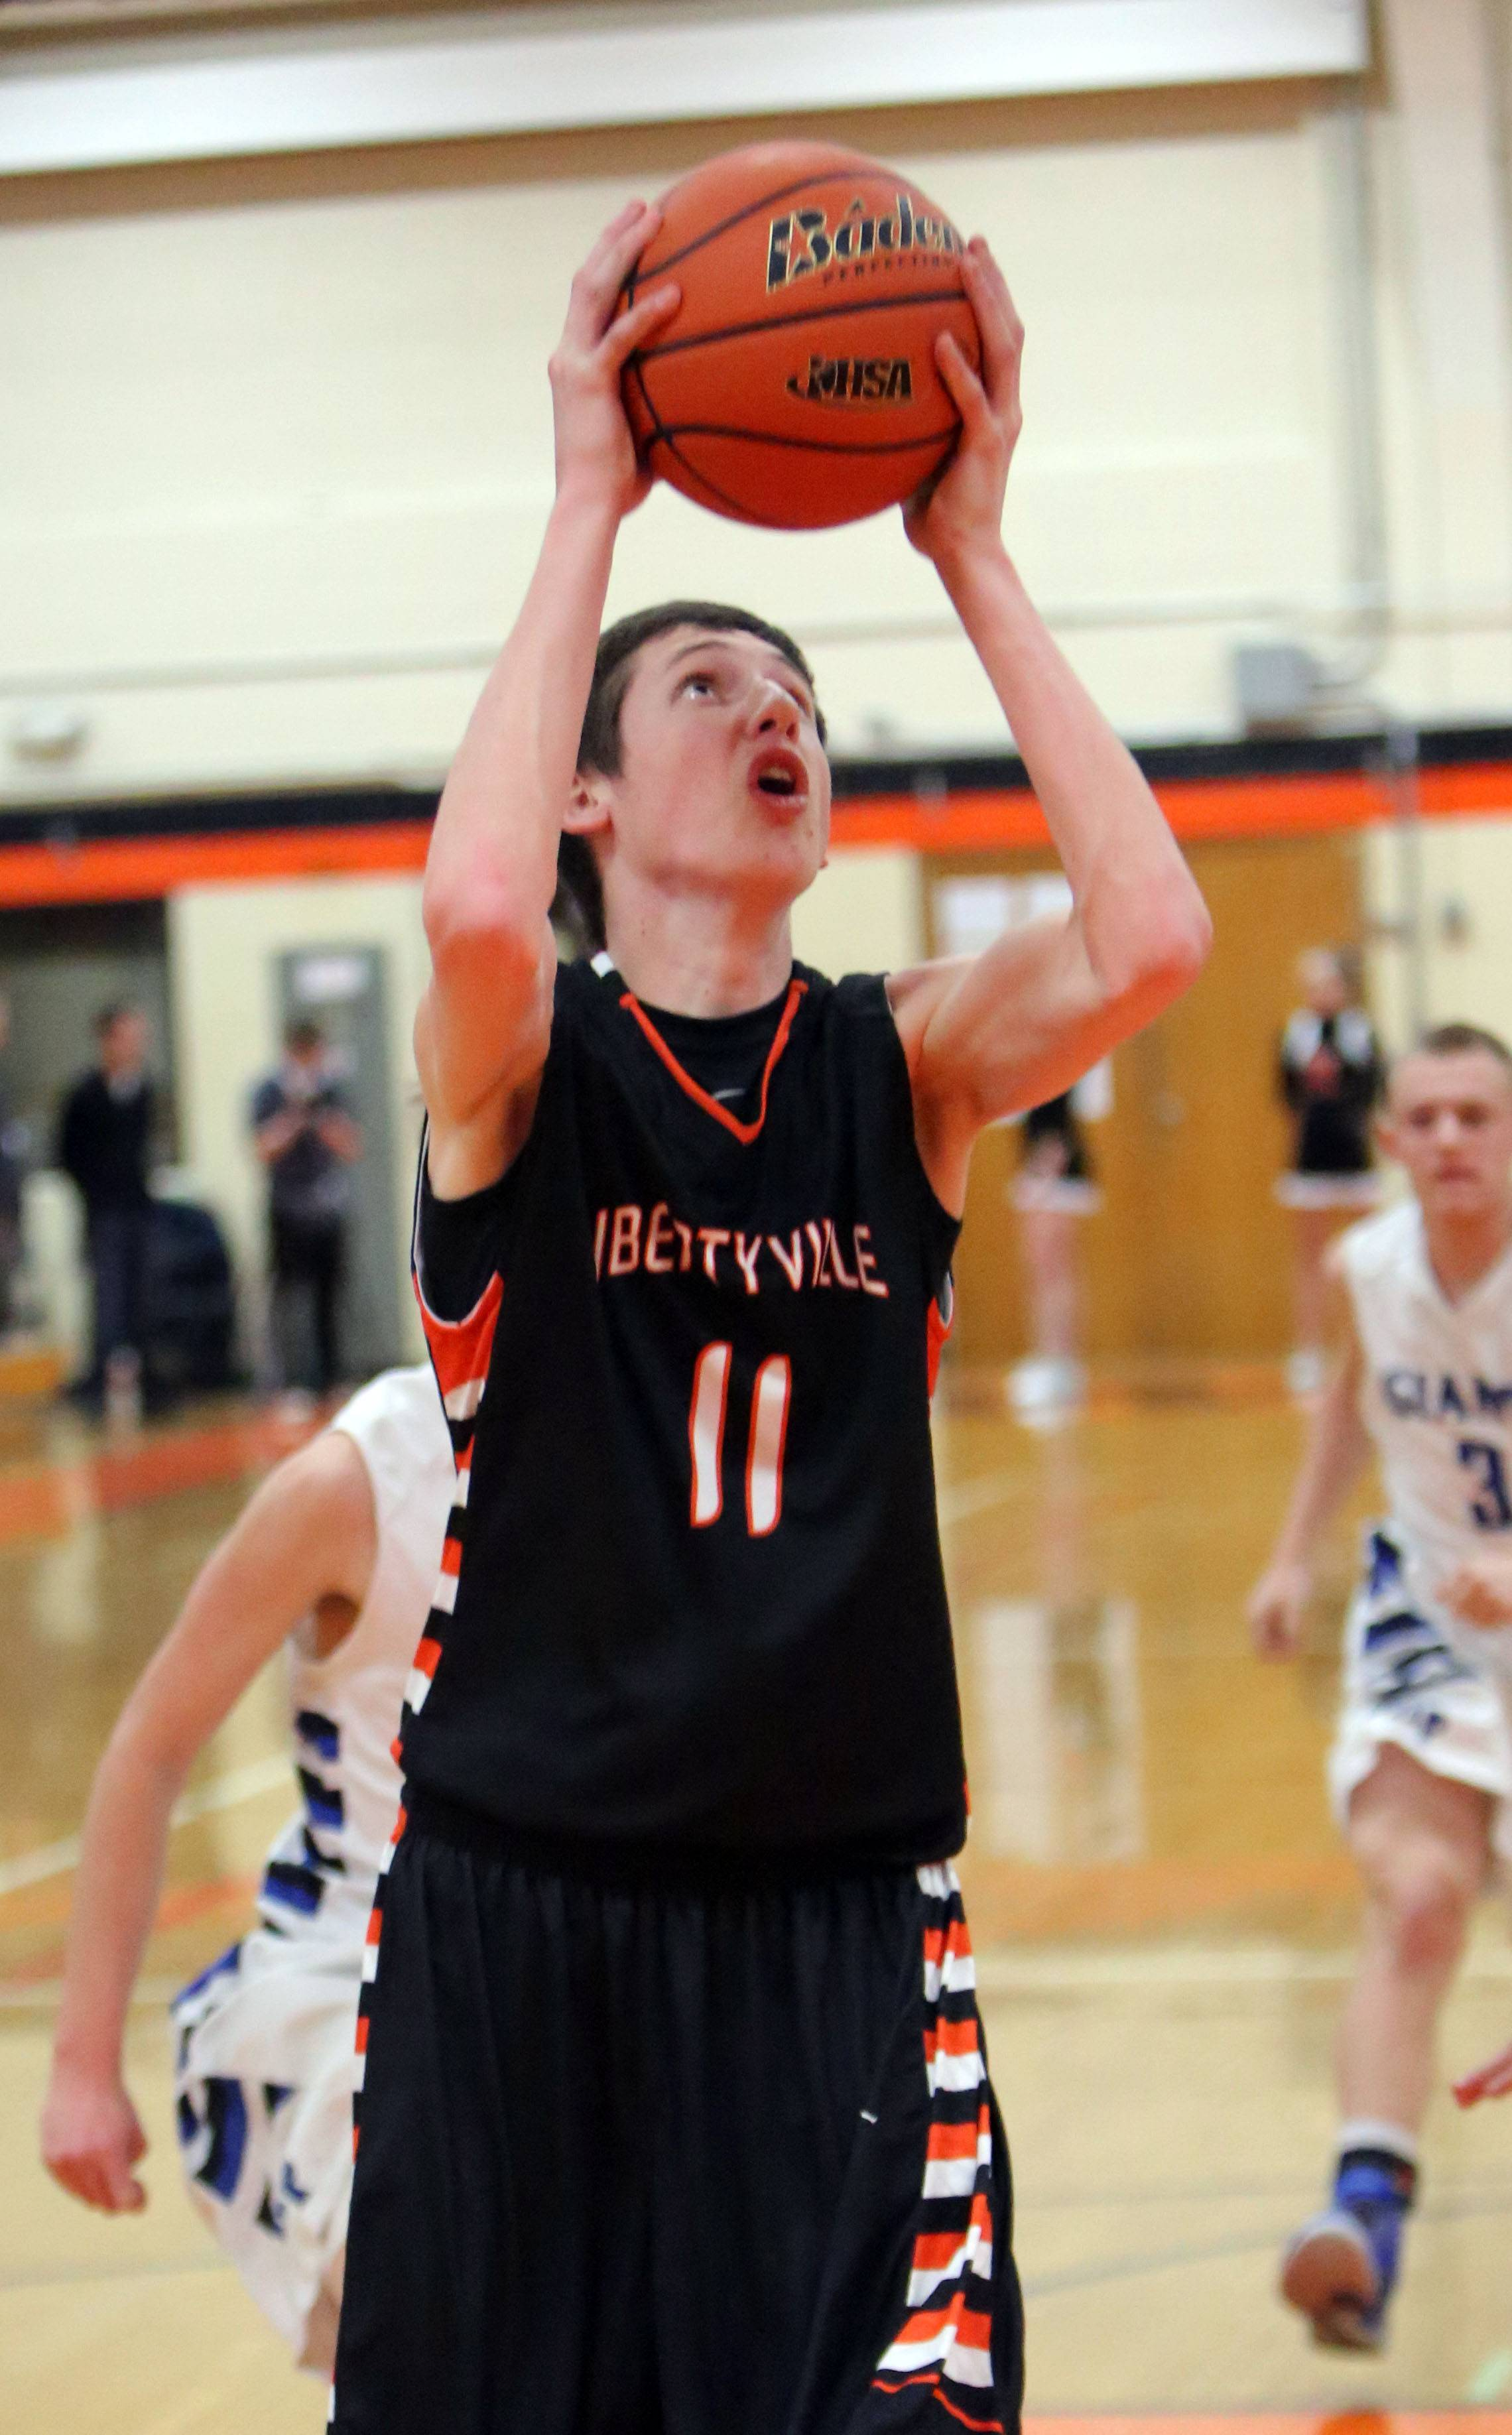 Libertyville's Conor Peterson shoots during Class 4A regional semifinal play at Libertyville on Tuesday.